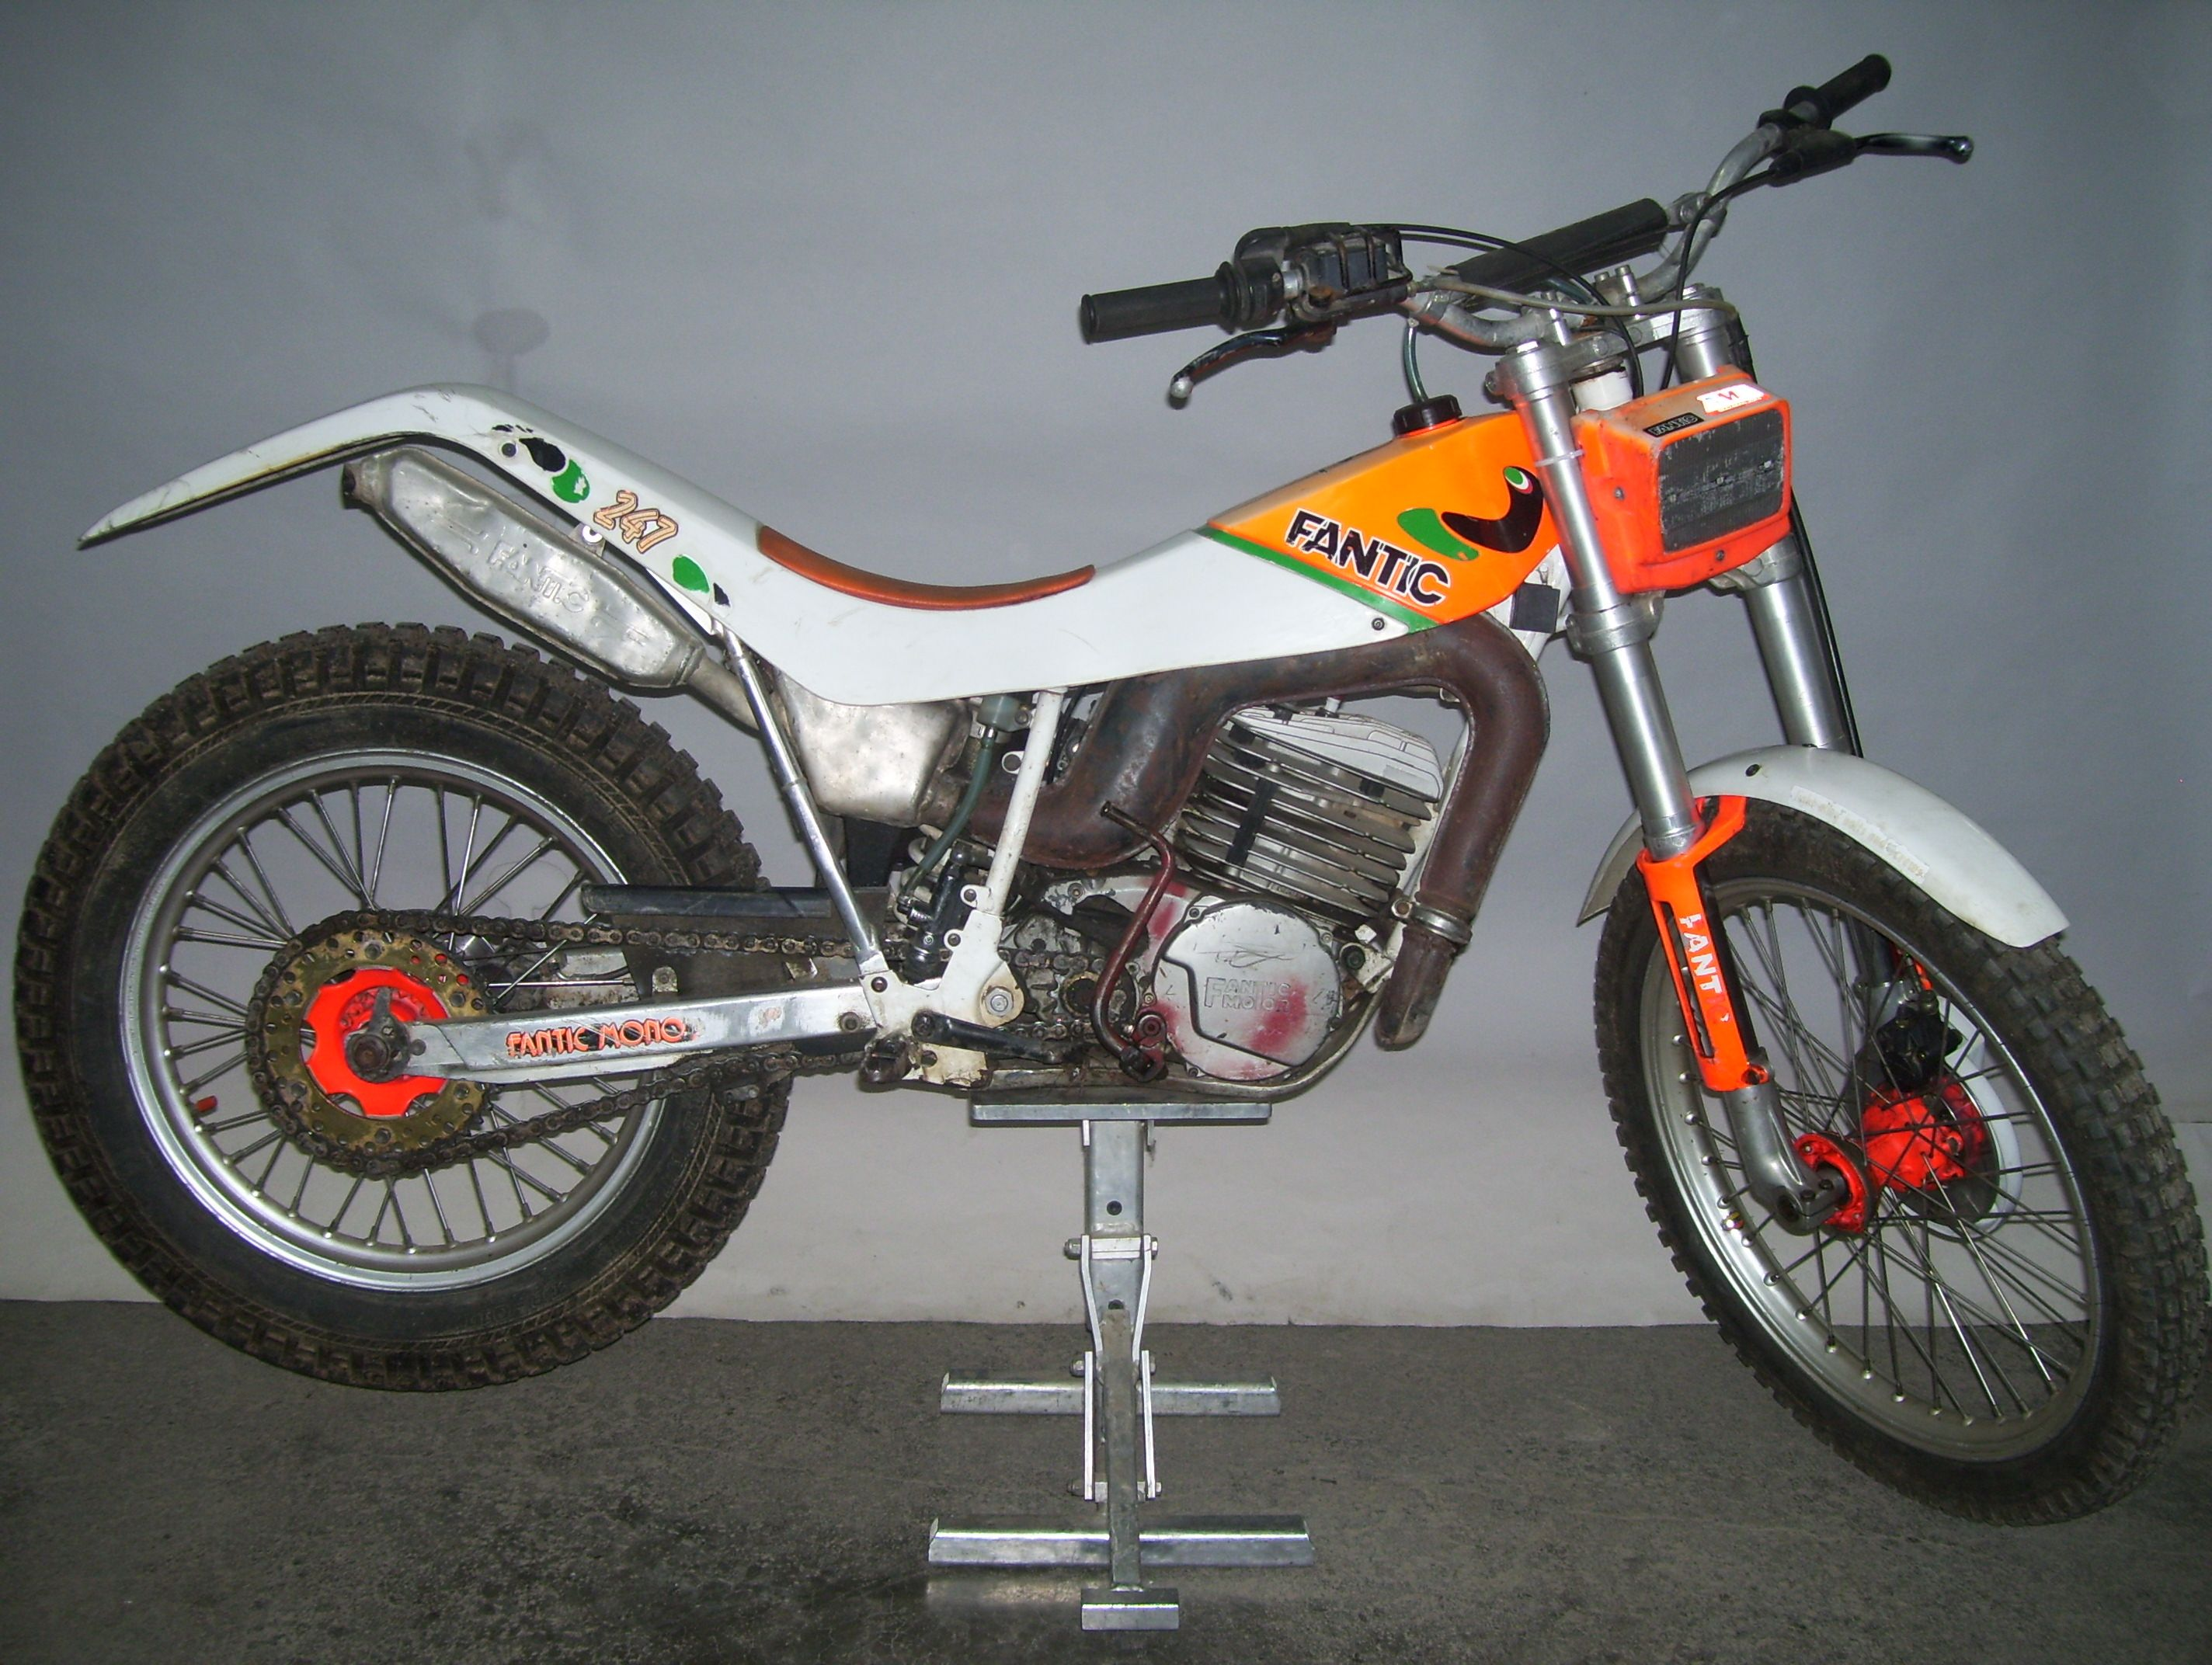 Pre Owned Trials Bikes For Sale At The Tryals Shop Trial Bike Bikes For Sale Bike